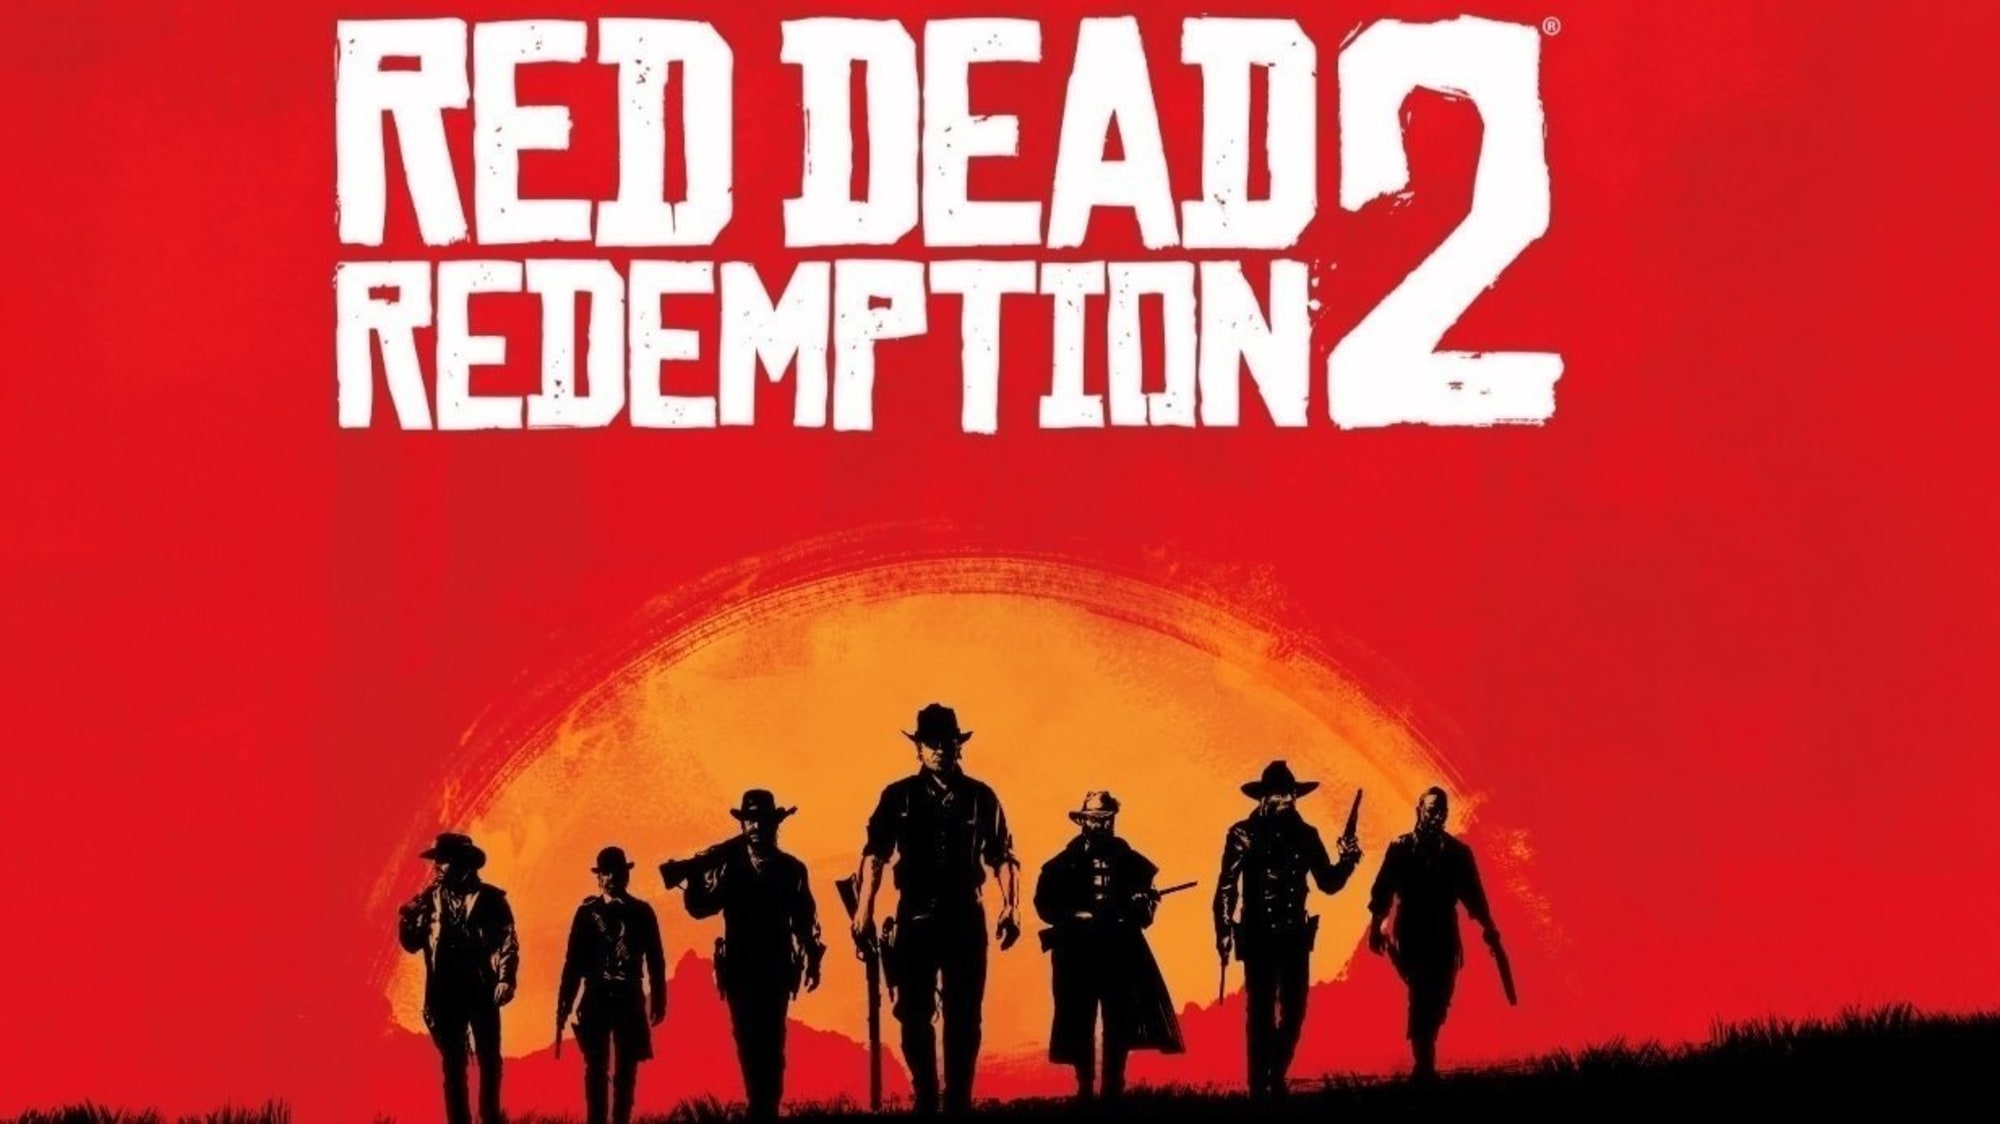 Red Dead Redemption 2 launch trailer focuses on loyalty